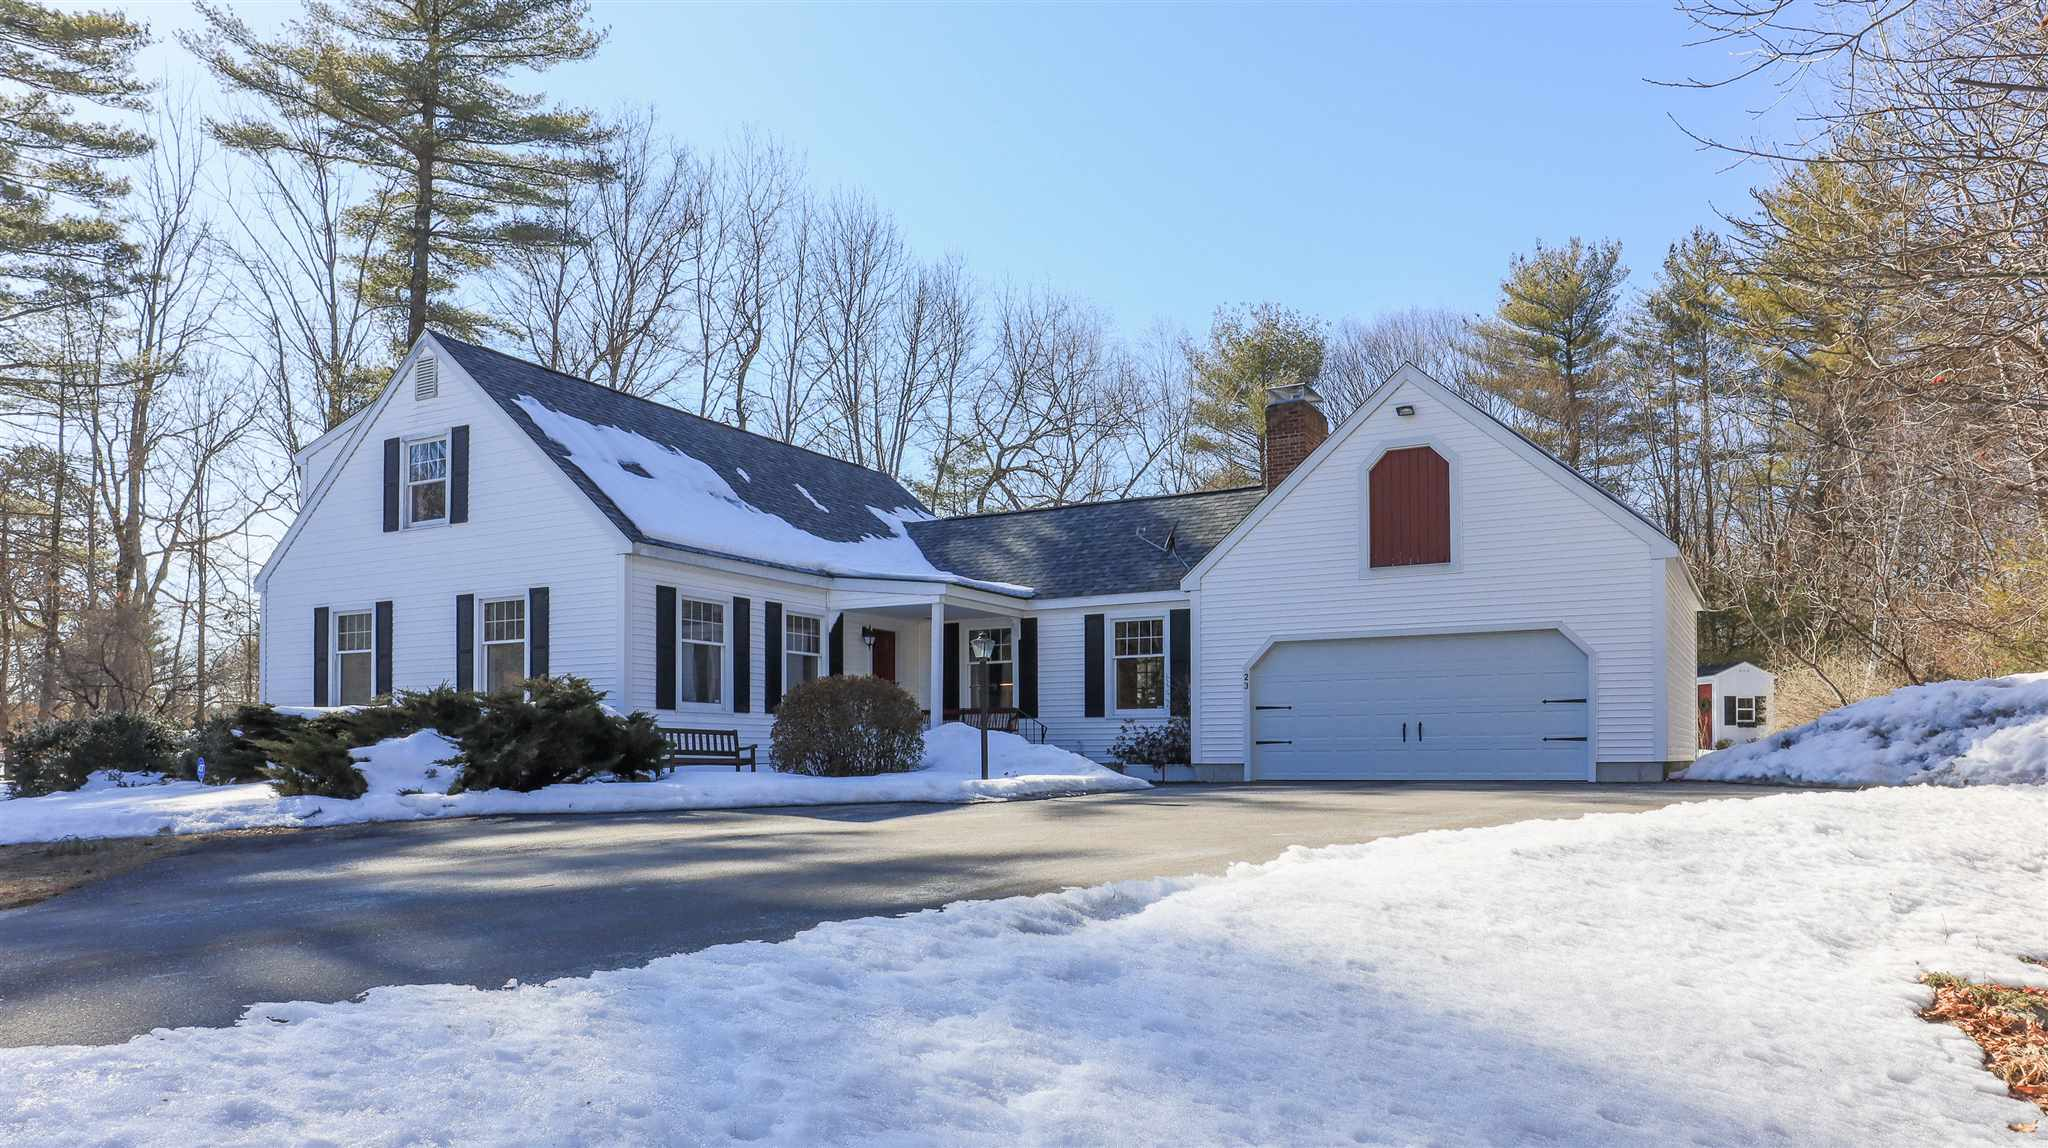 23 Deer Run Road, Henniker, NH 03242